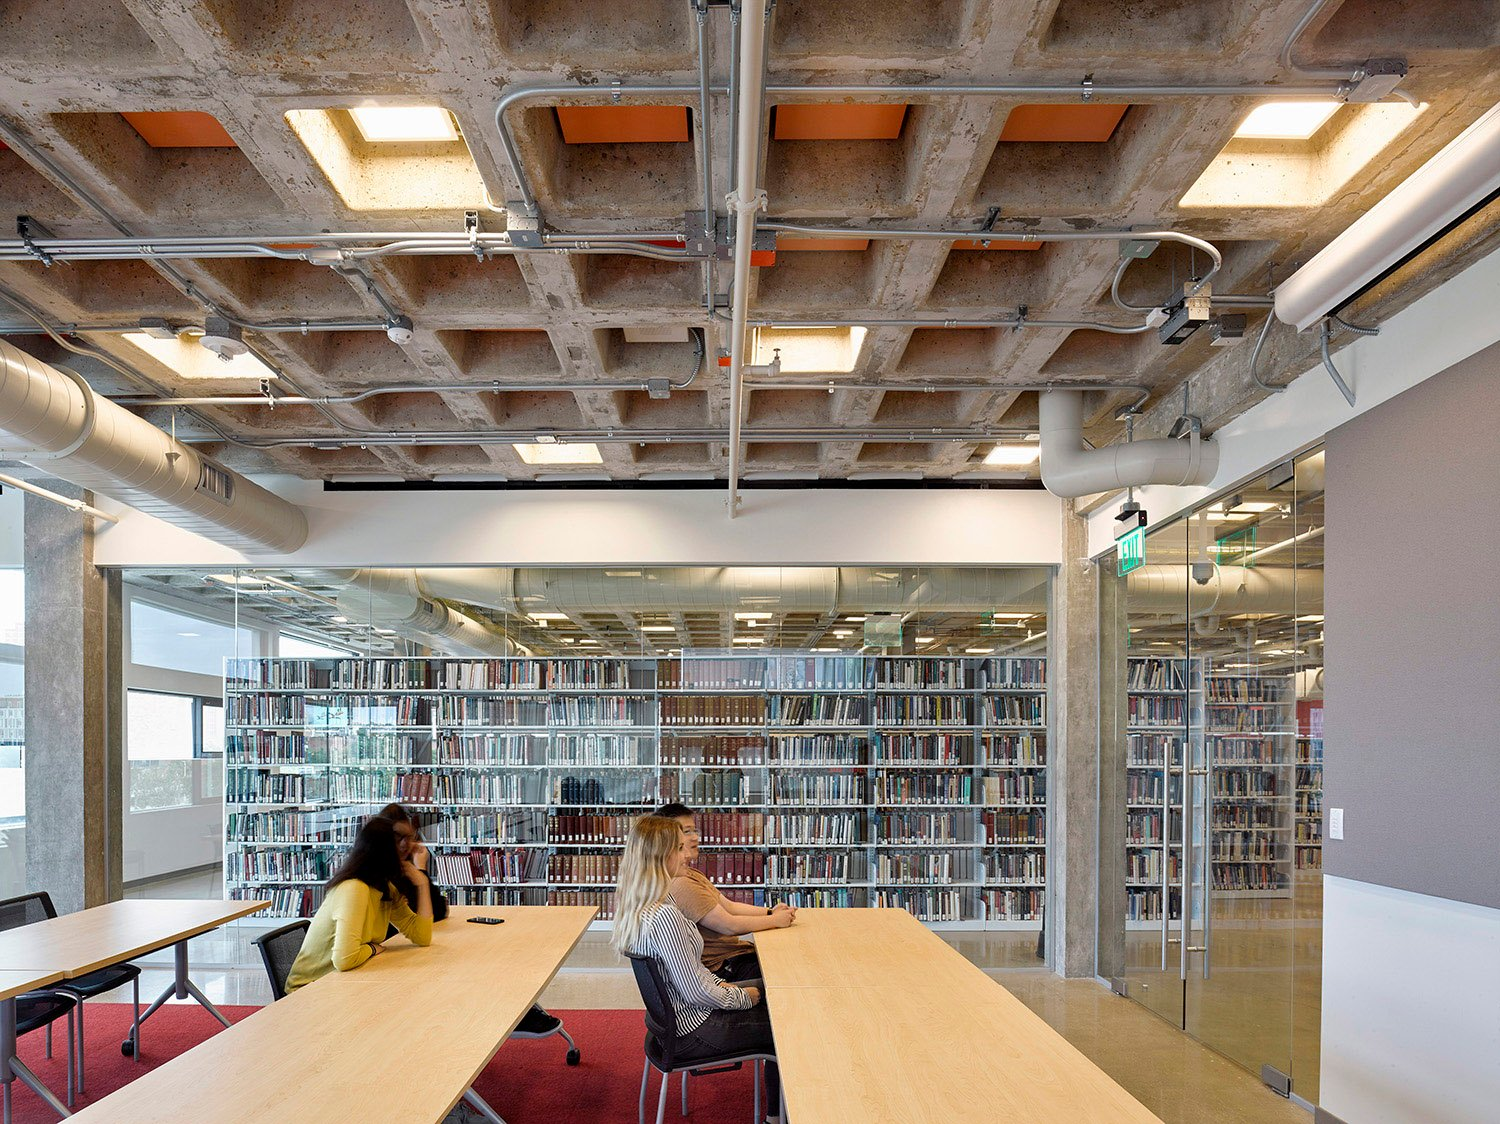 Lecture room with bookshelves David Matthiessen